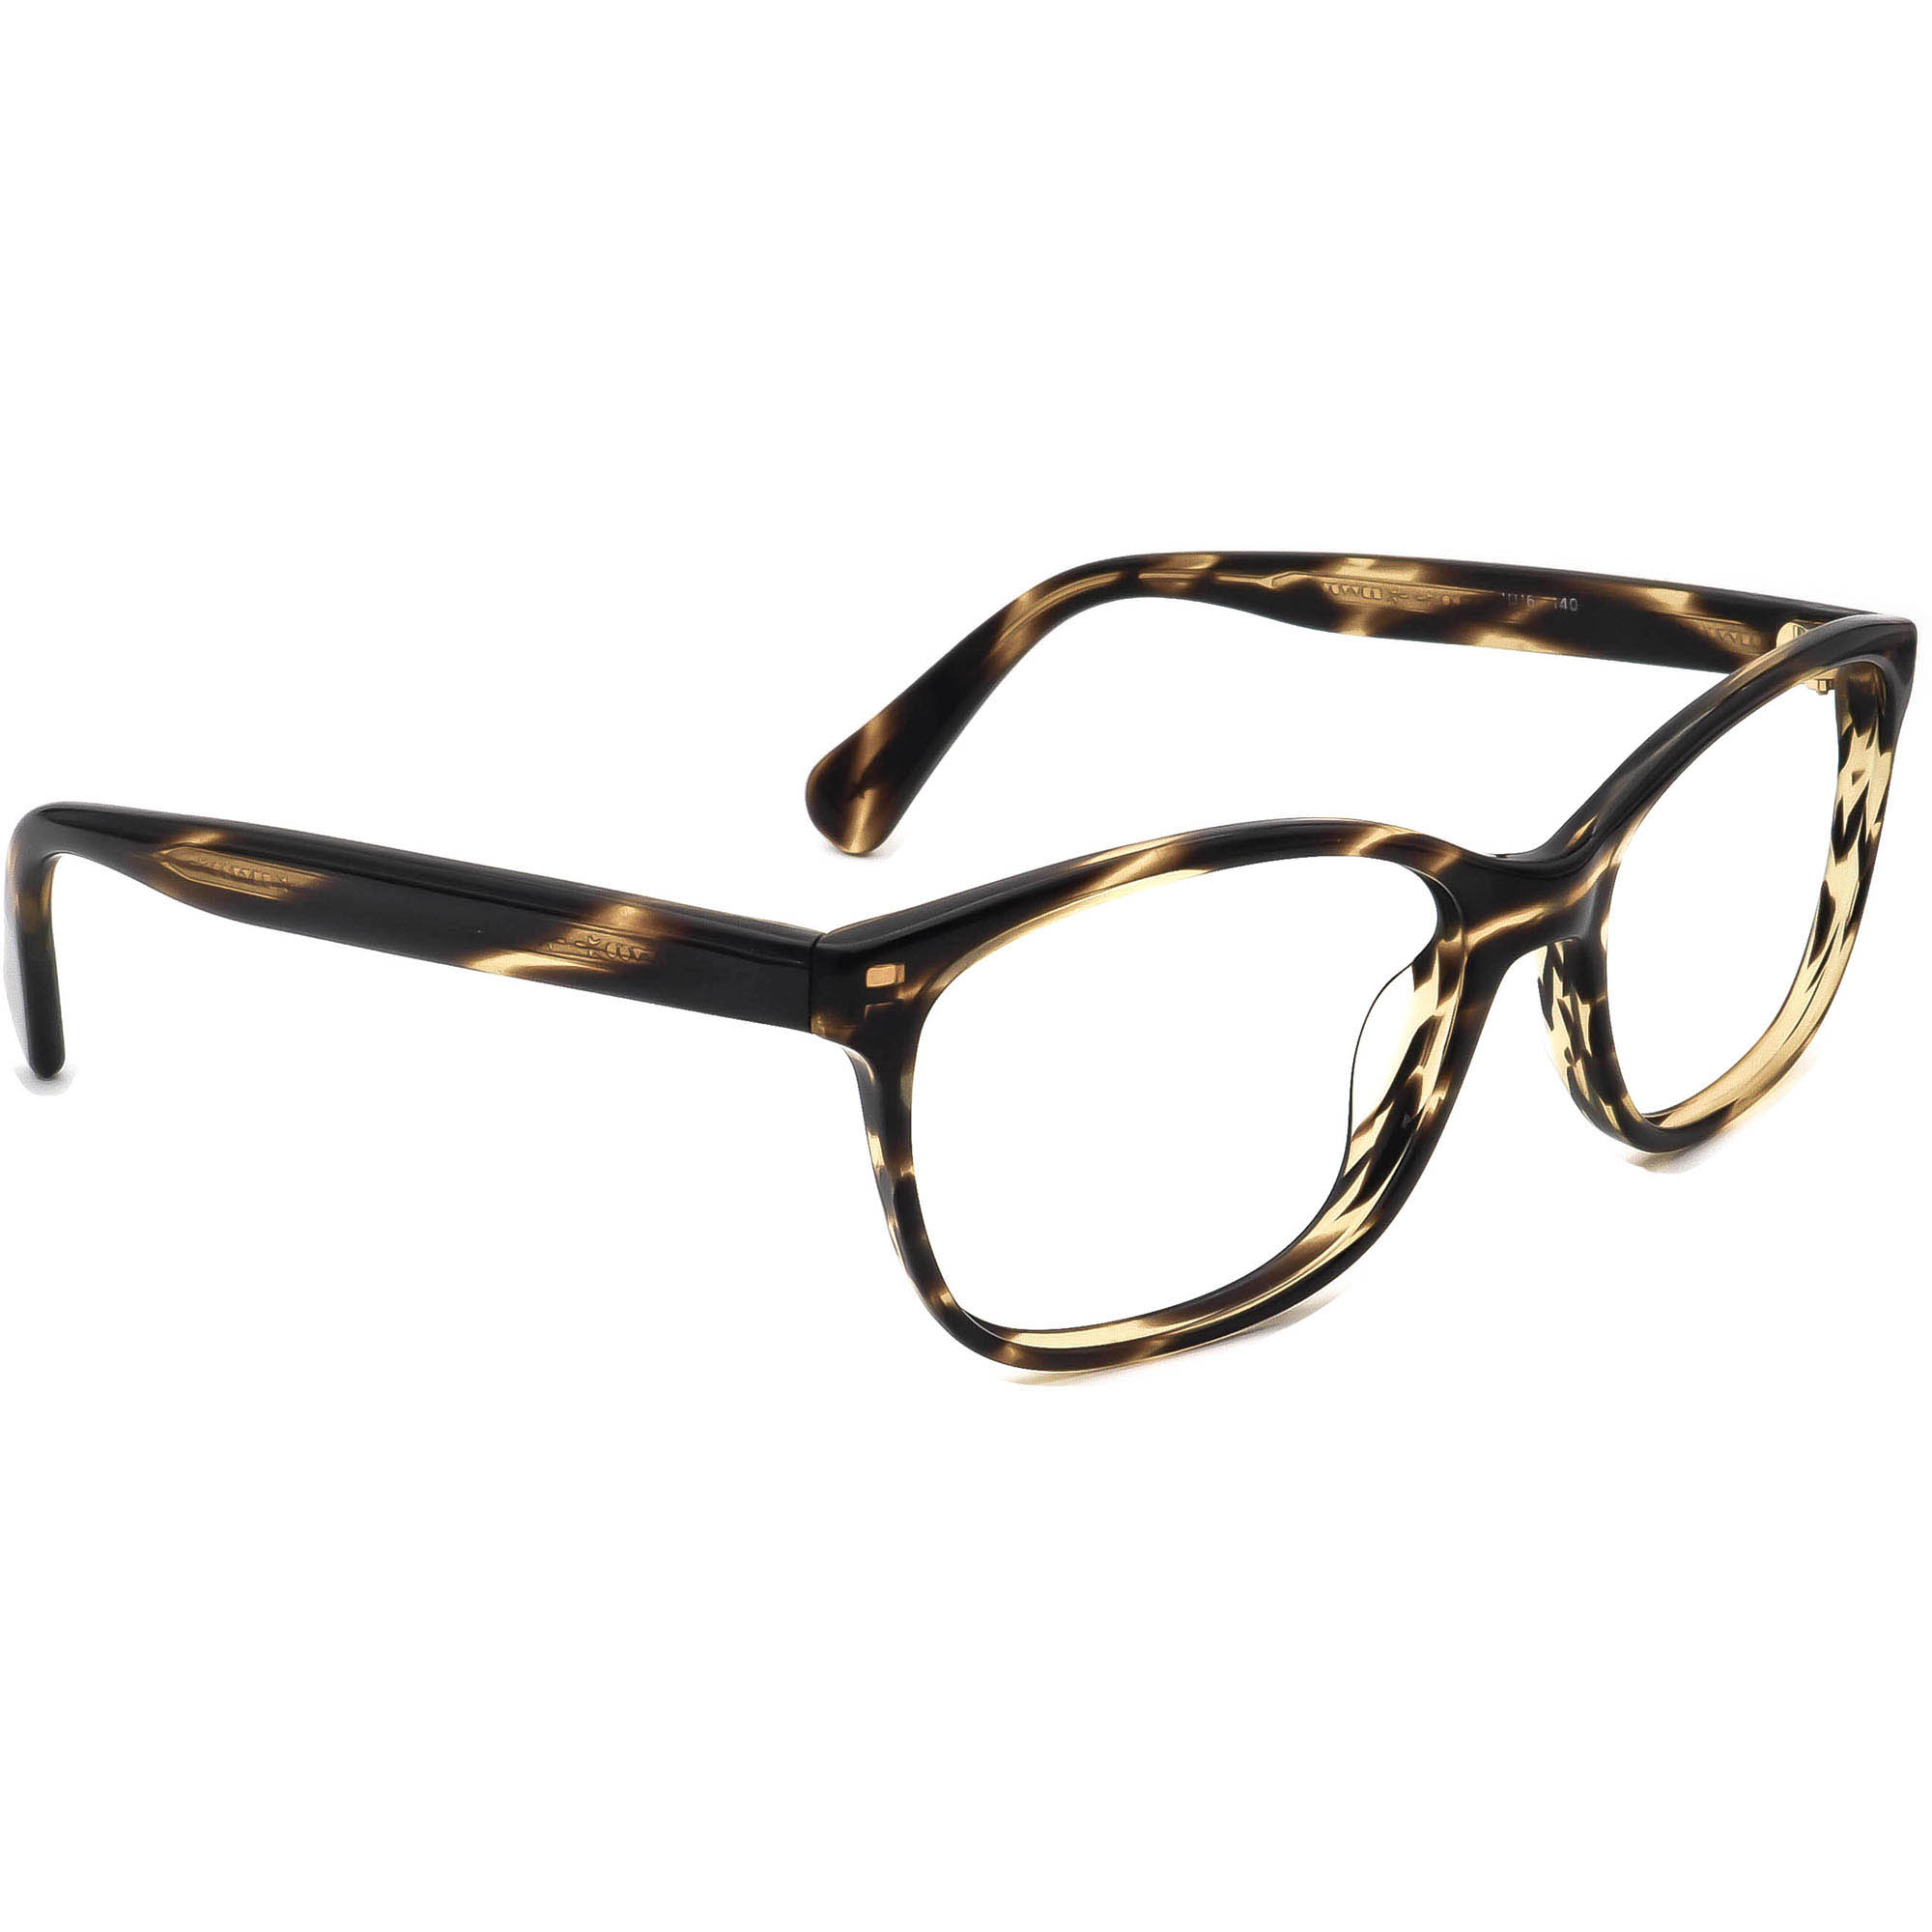 Oliver Peoples OV5251 LORELL 1003 Eyeglasses